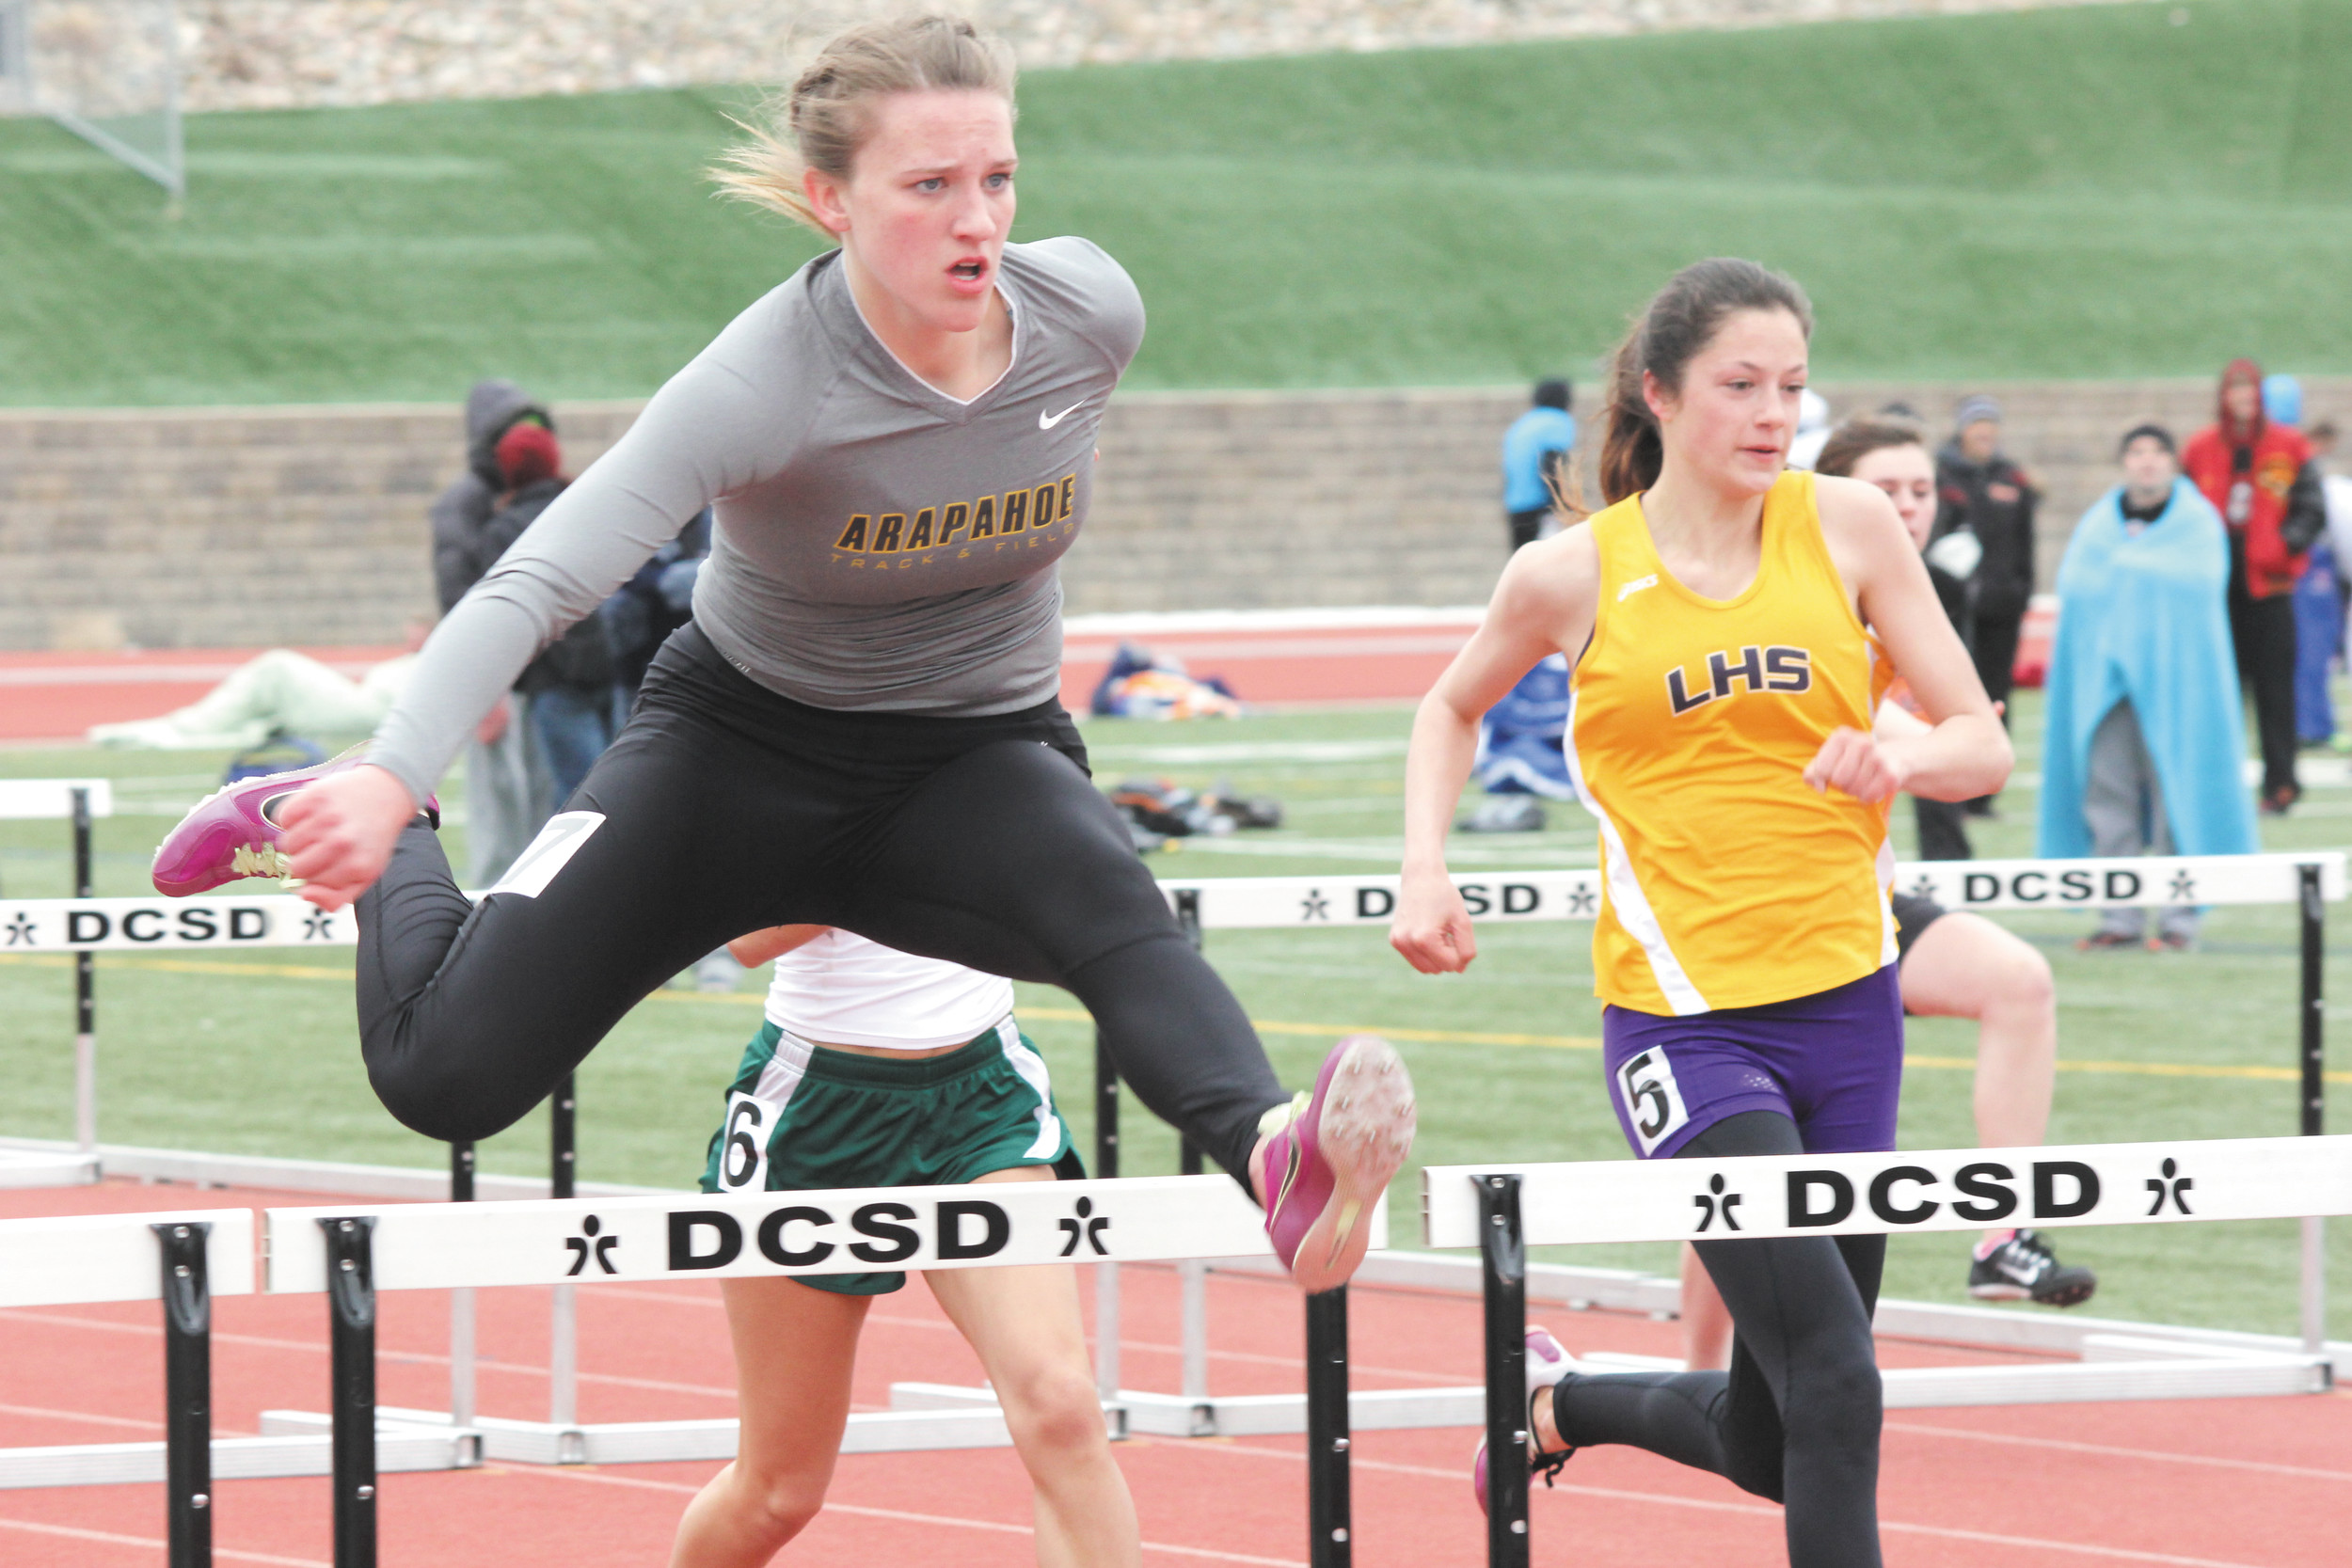 Lilly Boettcher of Arapahoe clears a hurdle ahead of Littleton's Victoria Dinkel in the 100-meter hurdles at the March 22 Sabercat Invitational. Boettcher finished 13th in the event but later in the meet helped the Warrior 800 sprint medley team finish third.